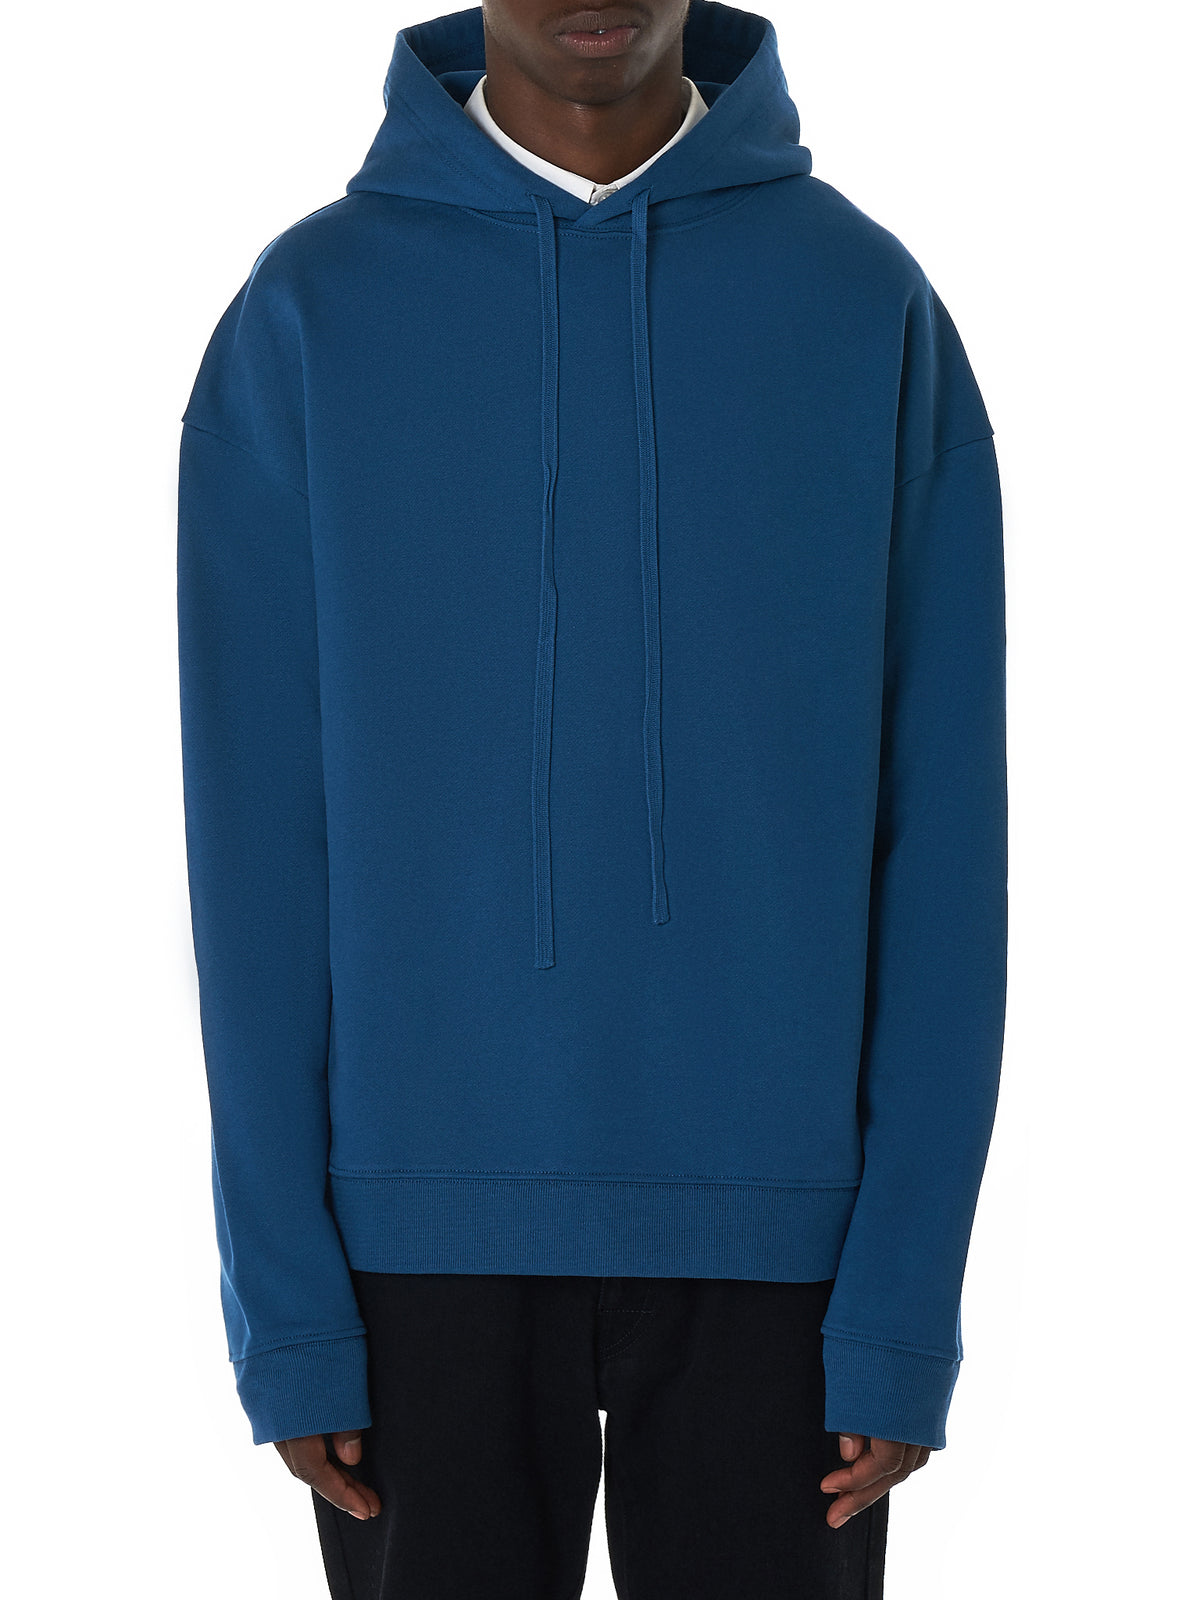 Modular Sleeve Hooded Pullover (182-188-19004-00044)